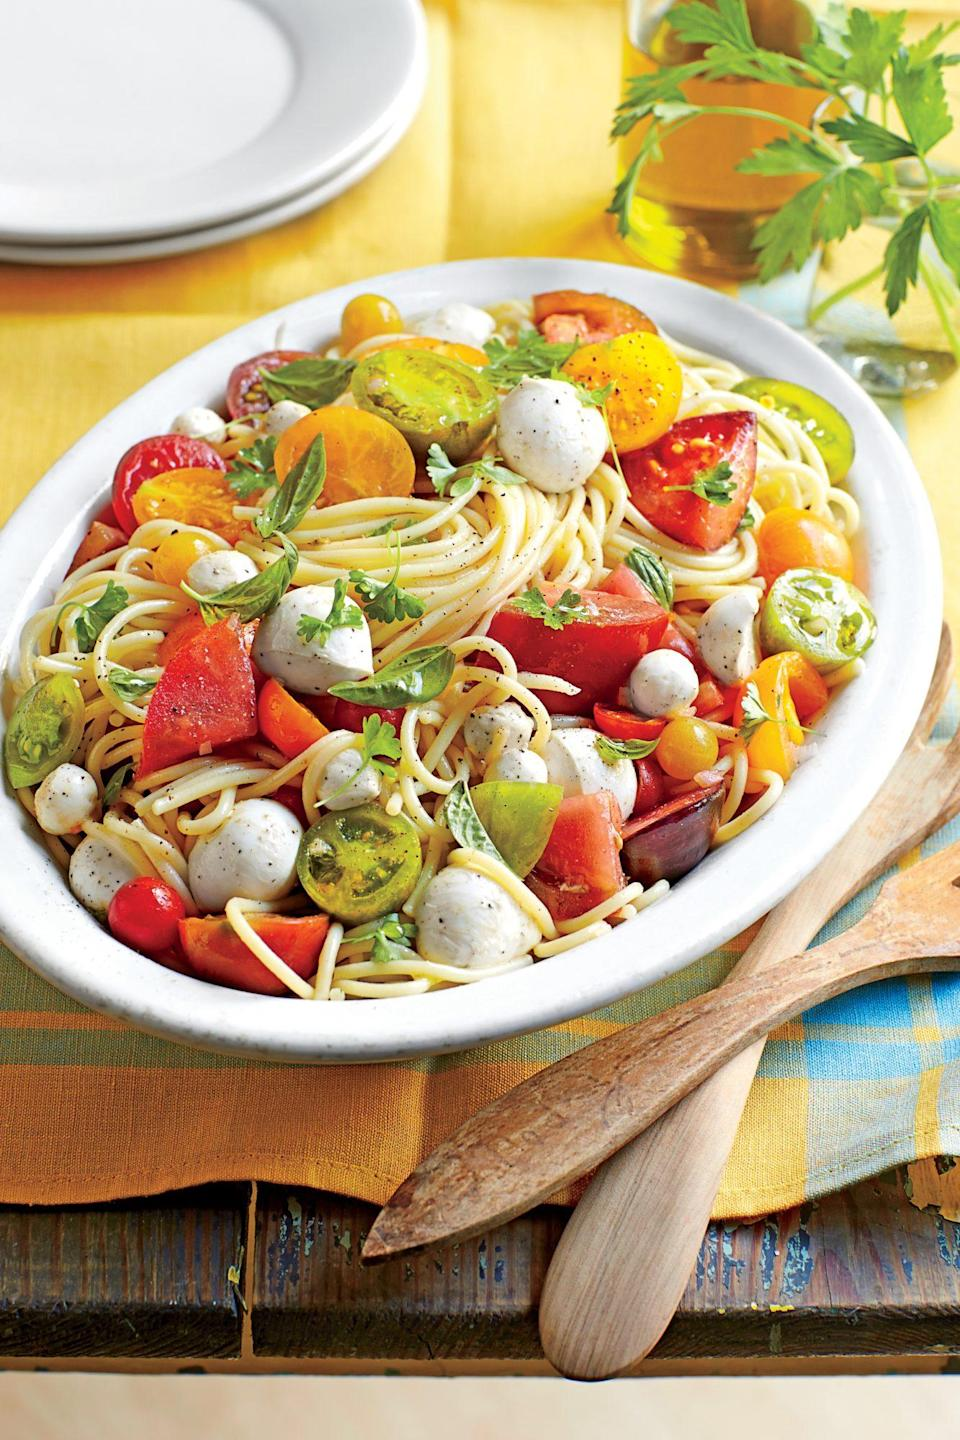 """<p><strong>Recipe: </strong><a href=""""https://www.southernliving.com/syndication/spaghetti-marinated-tomatoes-mozzarella"""" rel=""""nofollow noopener"""" target=""""_blank"""" data-ylk=""""slk:Spaghetti with Marinated Tomatoes and Mozzarella"""" class=""""link rapid-noclick-resp""""><strong>Spaghetti with Marinated Tomatoes and Mozzarella</strong></a></p> <p>You need just a few ingredients to make this colorful and light pasta dinner.</p>"""